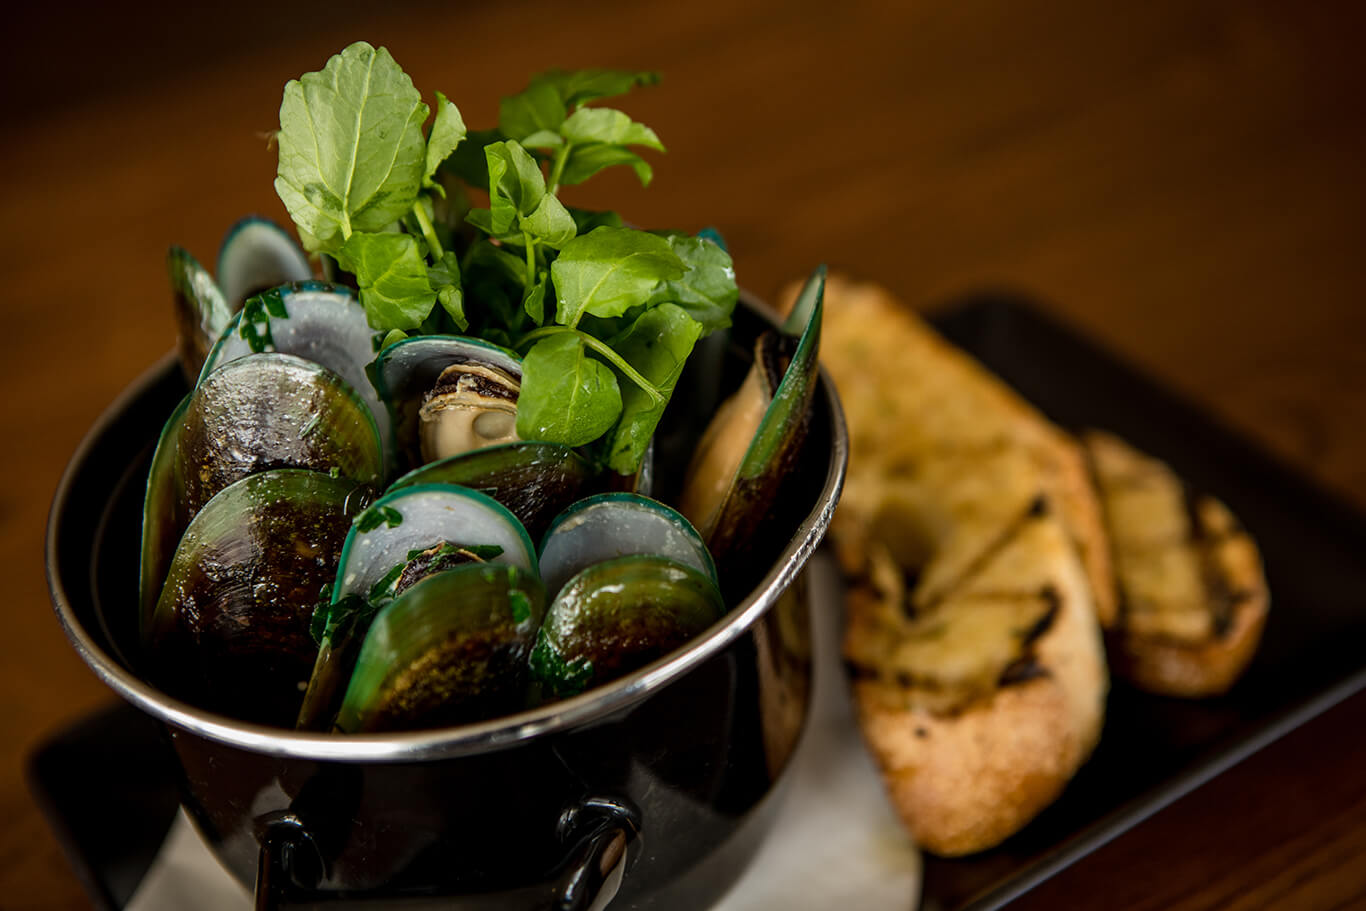 Green lipped mussels served in a small pot with a side of bread